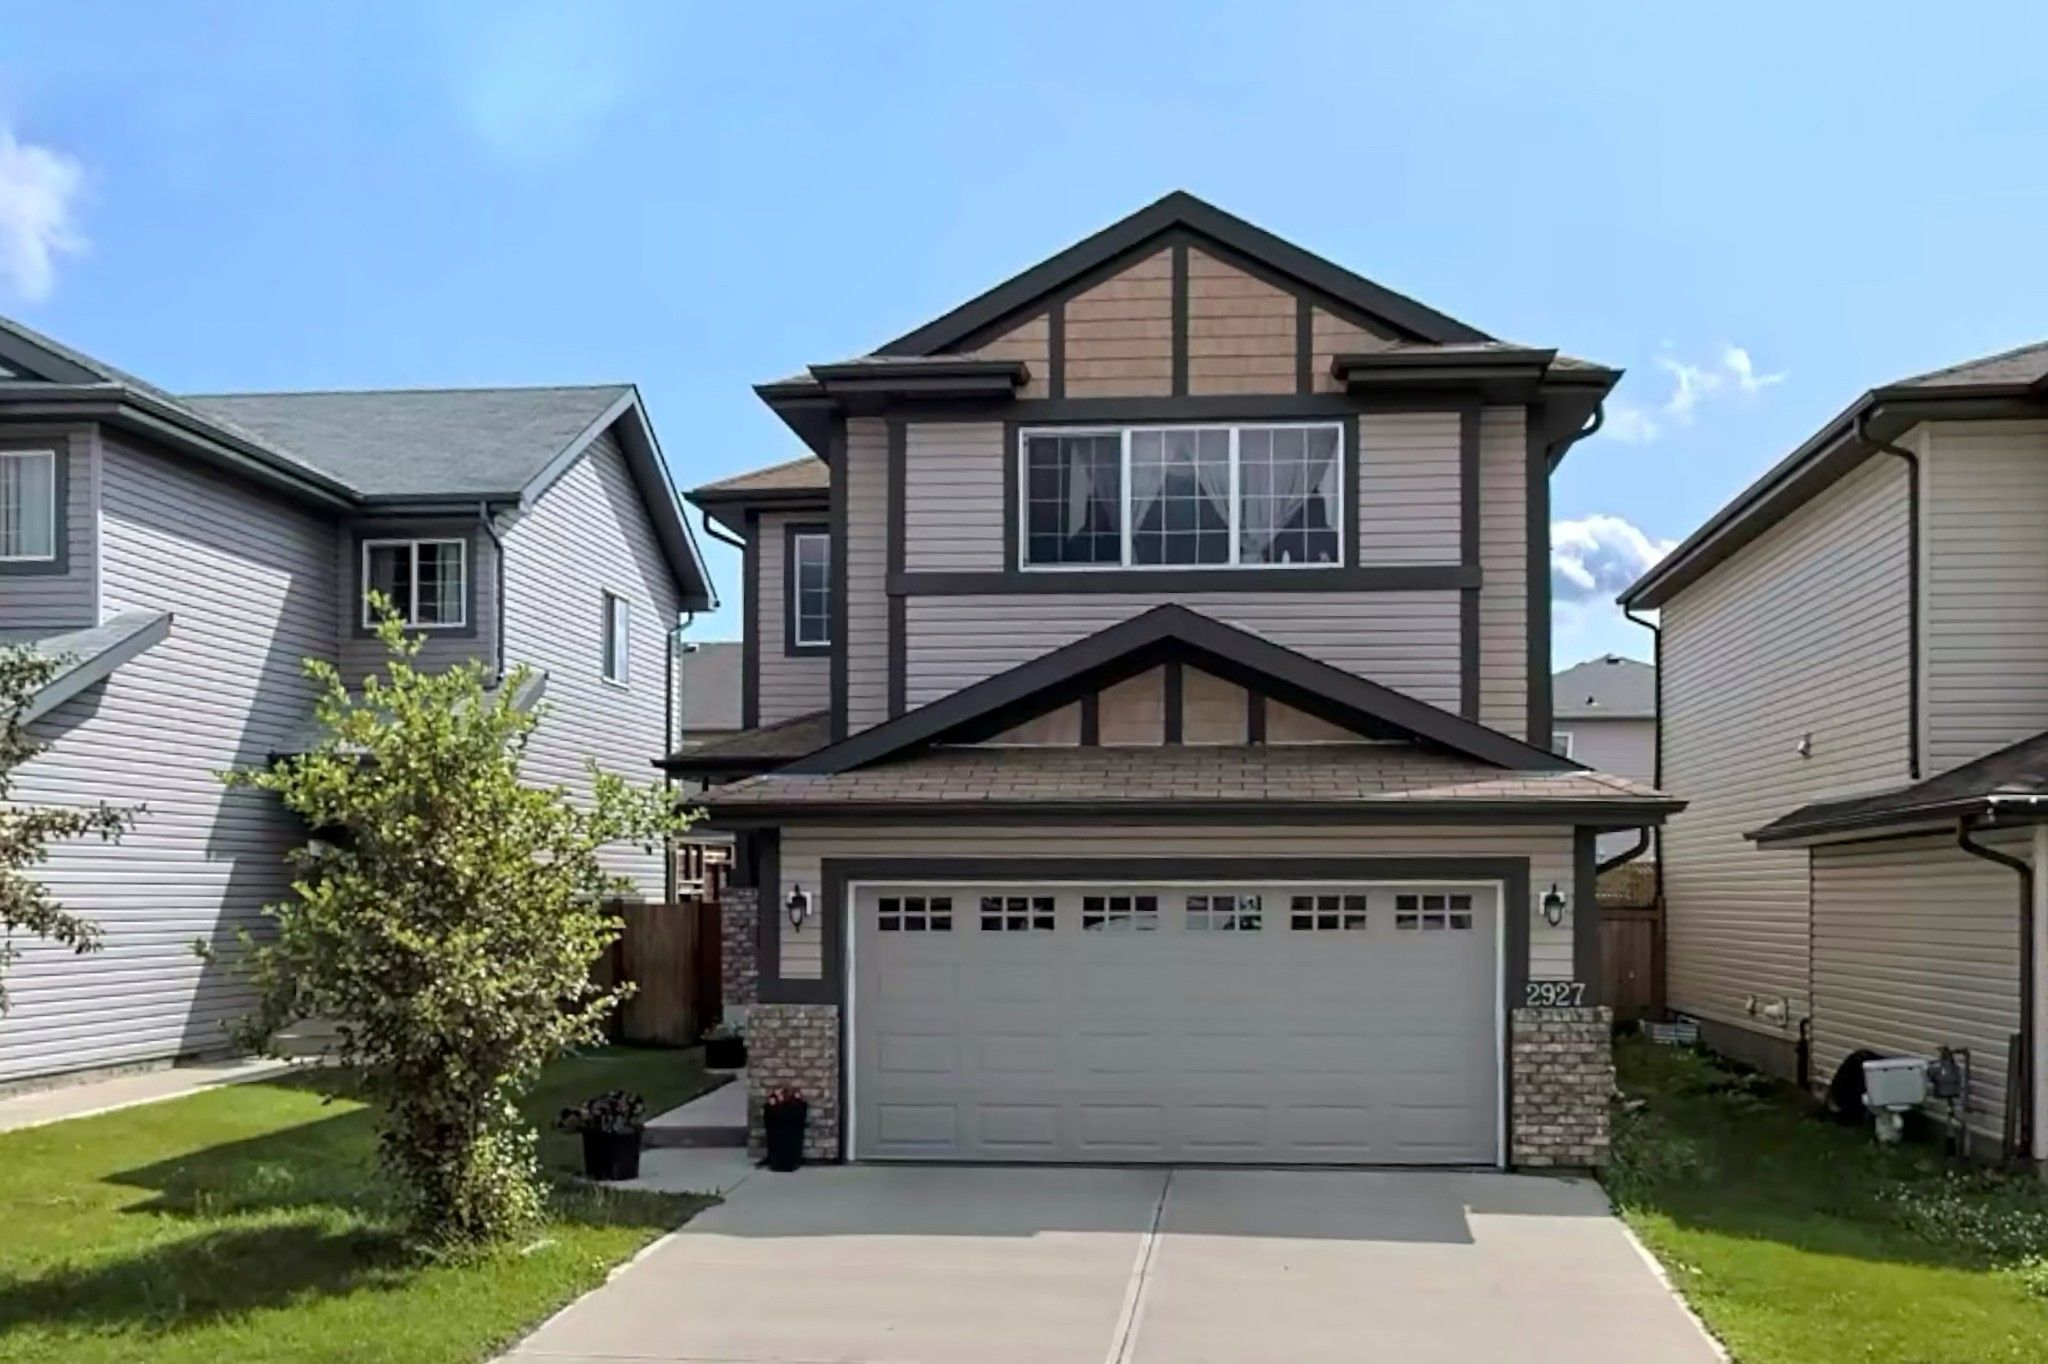 Main Photo: 2927 26 Ave NW in Edmonton: House for sale